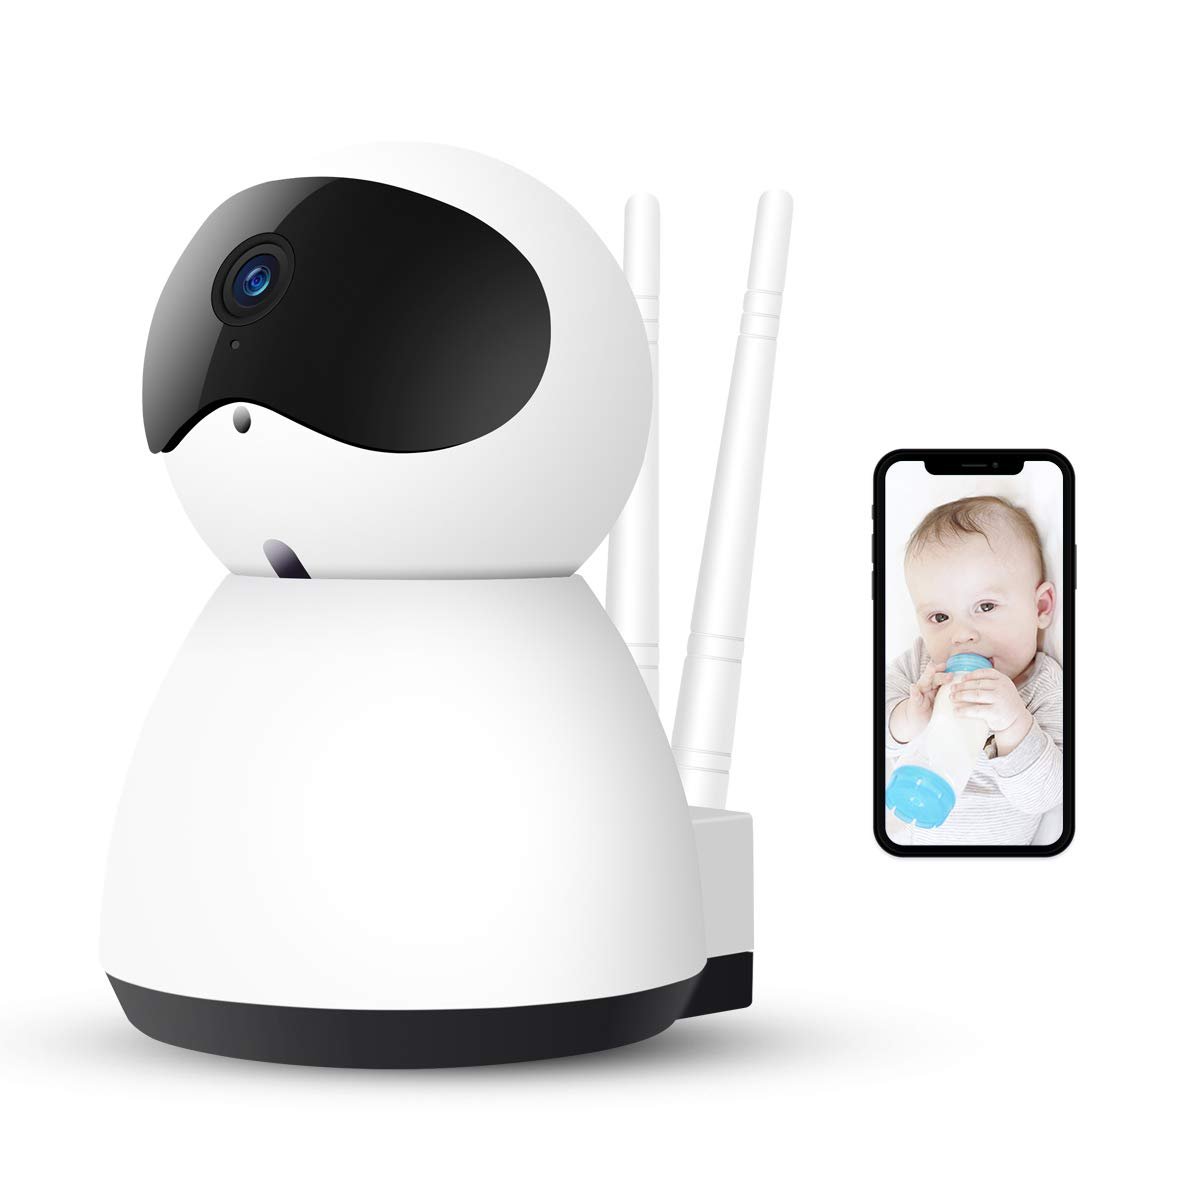 AOGE Baby Monitor with Camera, 1080P HD Security Home Wifi IP Camera with  Two-Way Audio, Night Vision, Motion Detection, Pan/Tilt/Zoom for IOS,